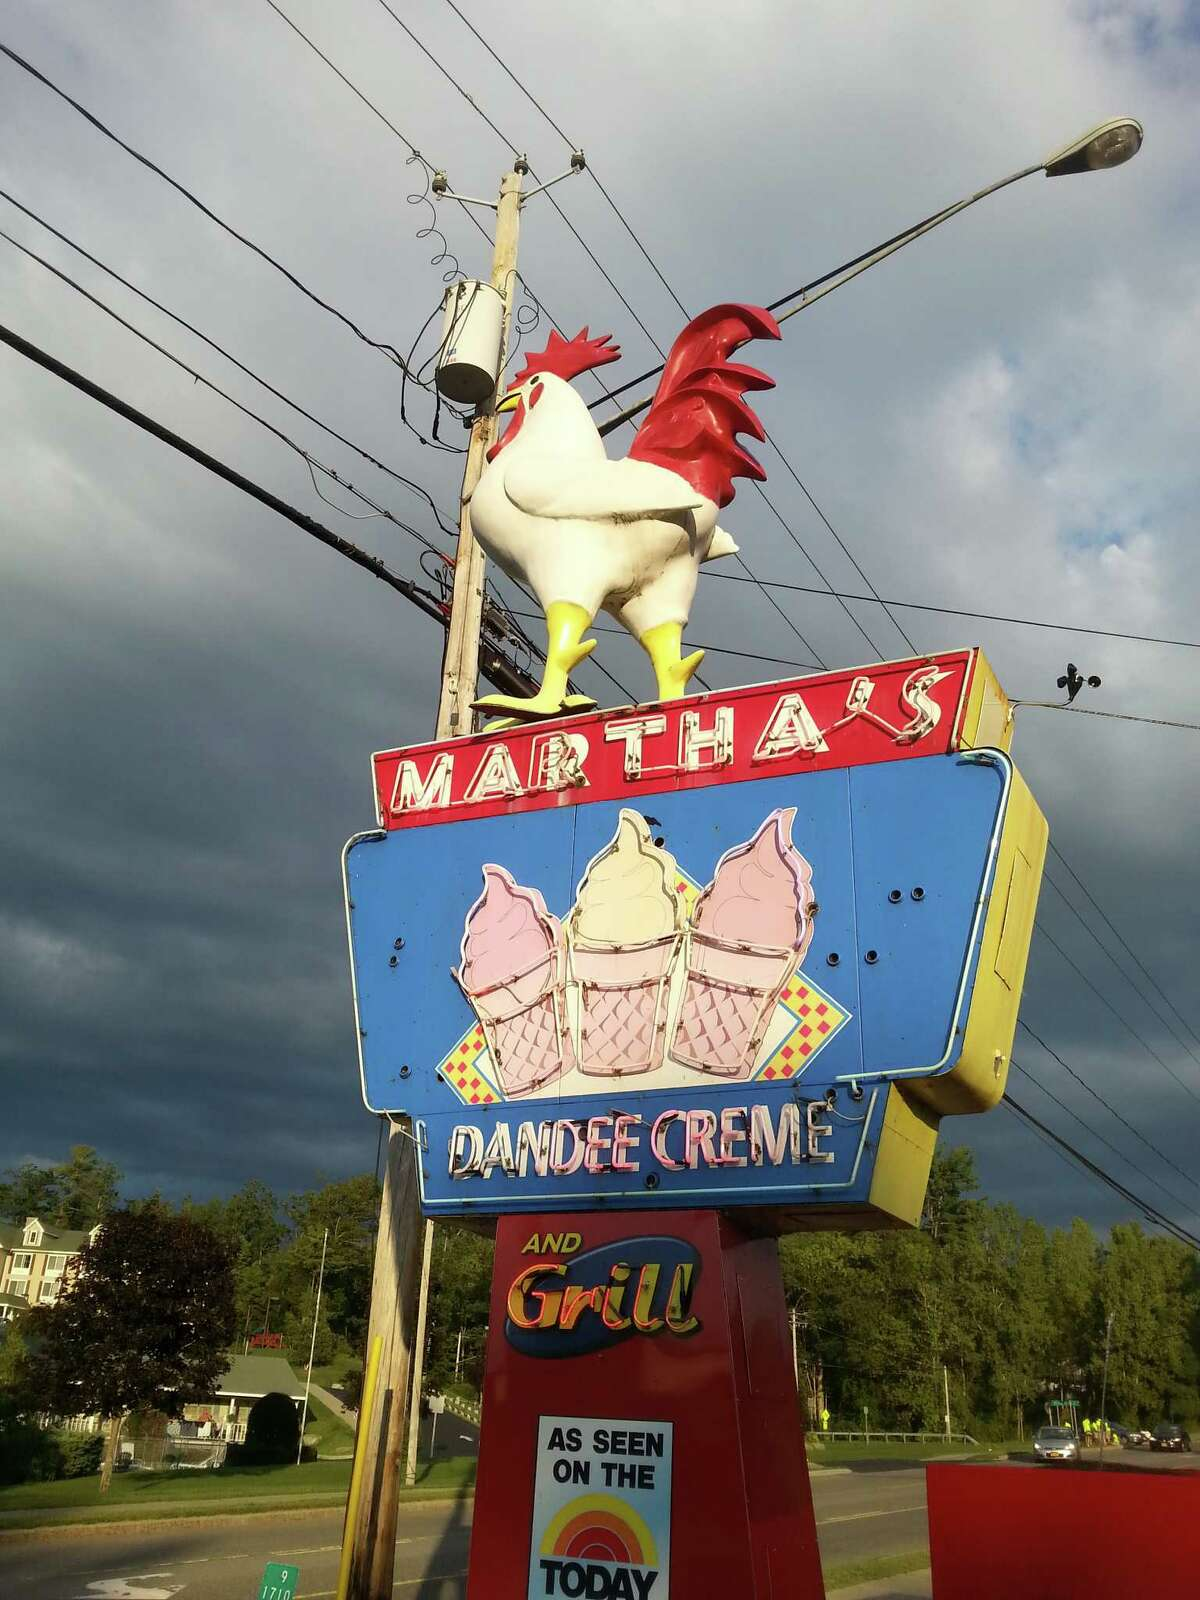 Martha's Dandee Creme in Queensbury. (Deanna Fox)